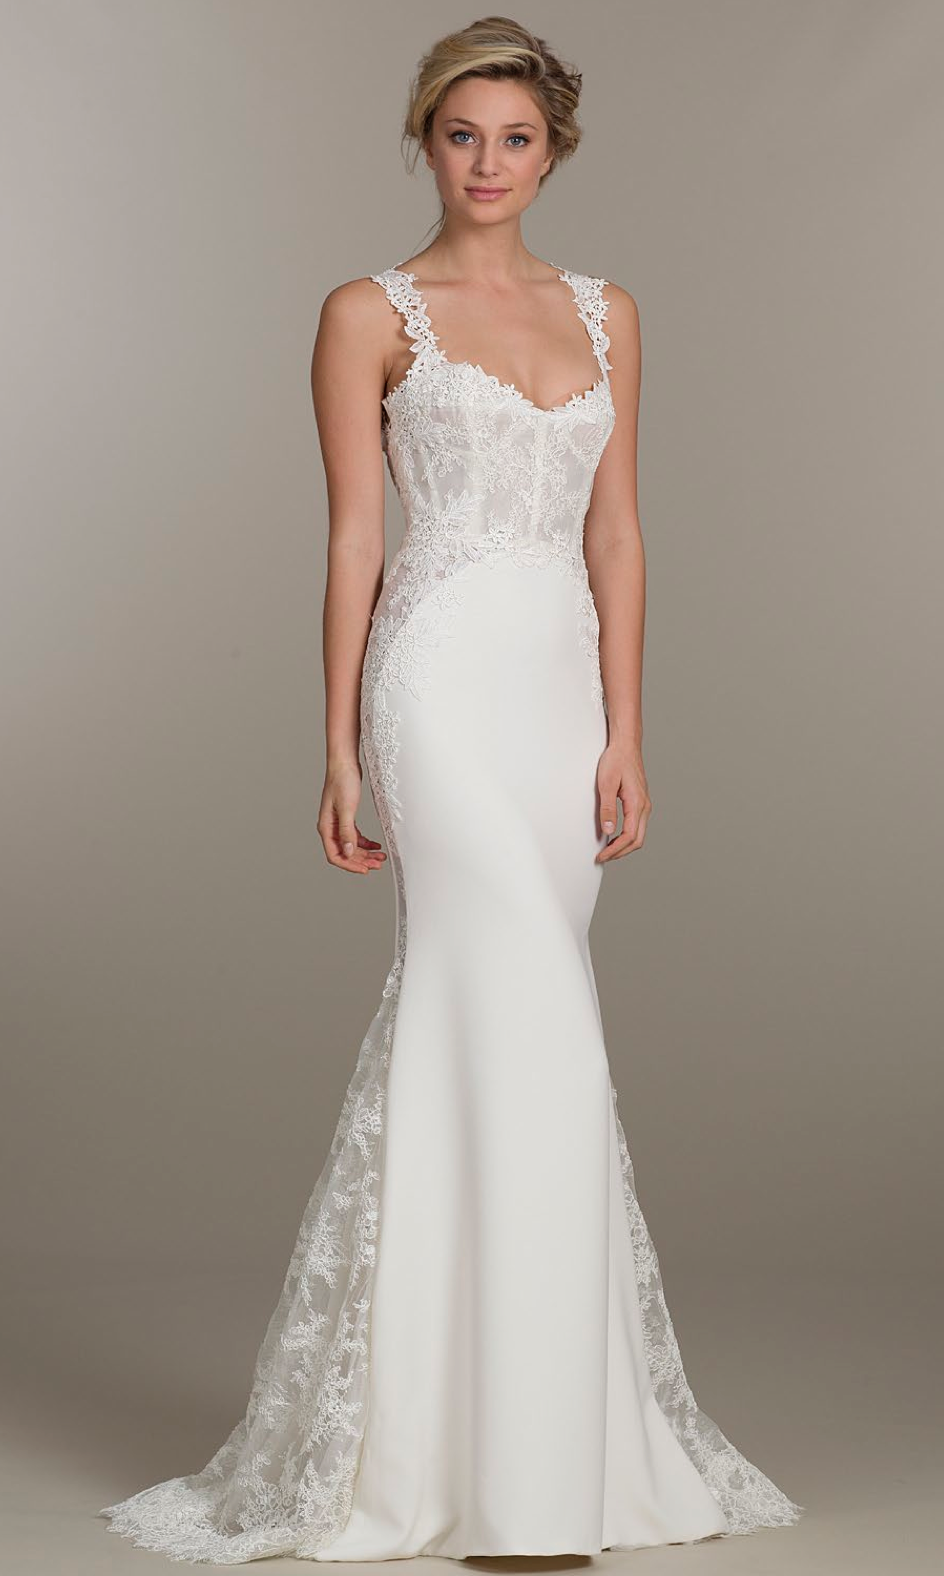 Tk gowns bridal gowns and lace applique